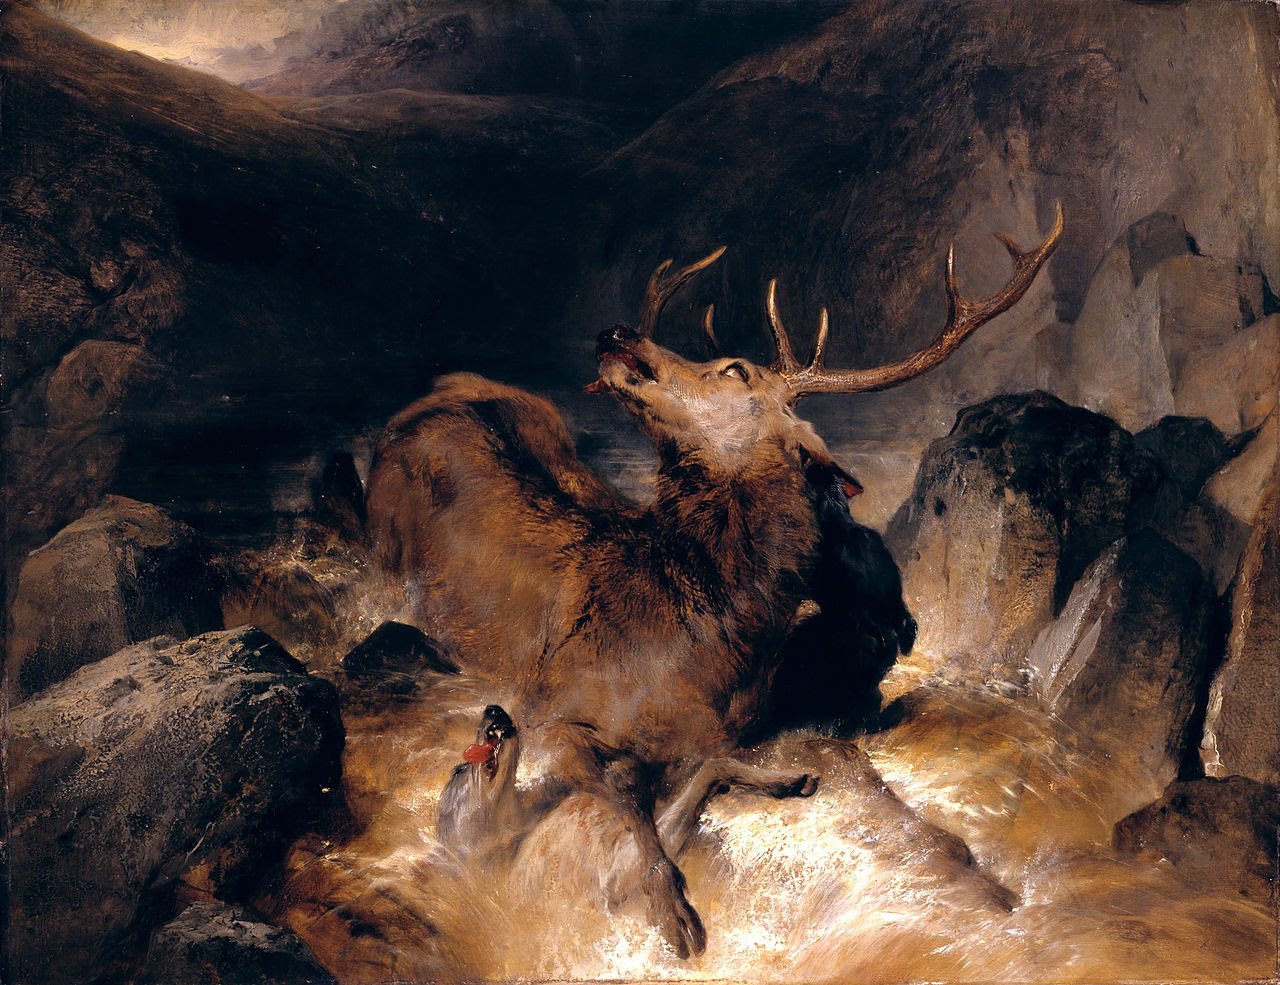 http://upload.wikimedia.org/wikipedia/commons/thumb/c/c6/Sir_Edwin_Henry_Landseer_-_Deer_and_Deer_Hounds_in_a_Mountain_Torrent_-_Google_Art_Project.jpg/1280px-Sir_Edwin_Henry_Landseer_-_Deer_and_Deer_Hounds_in_a_Mountain_Torrent_-_Google_Art_Project.jpg